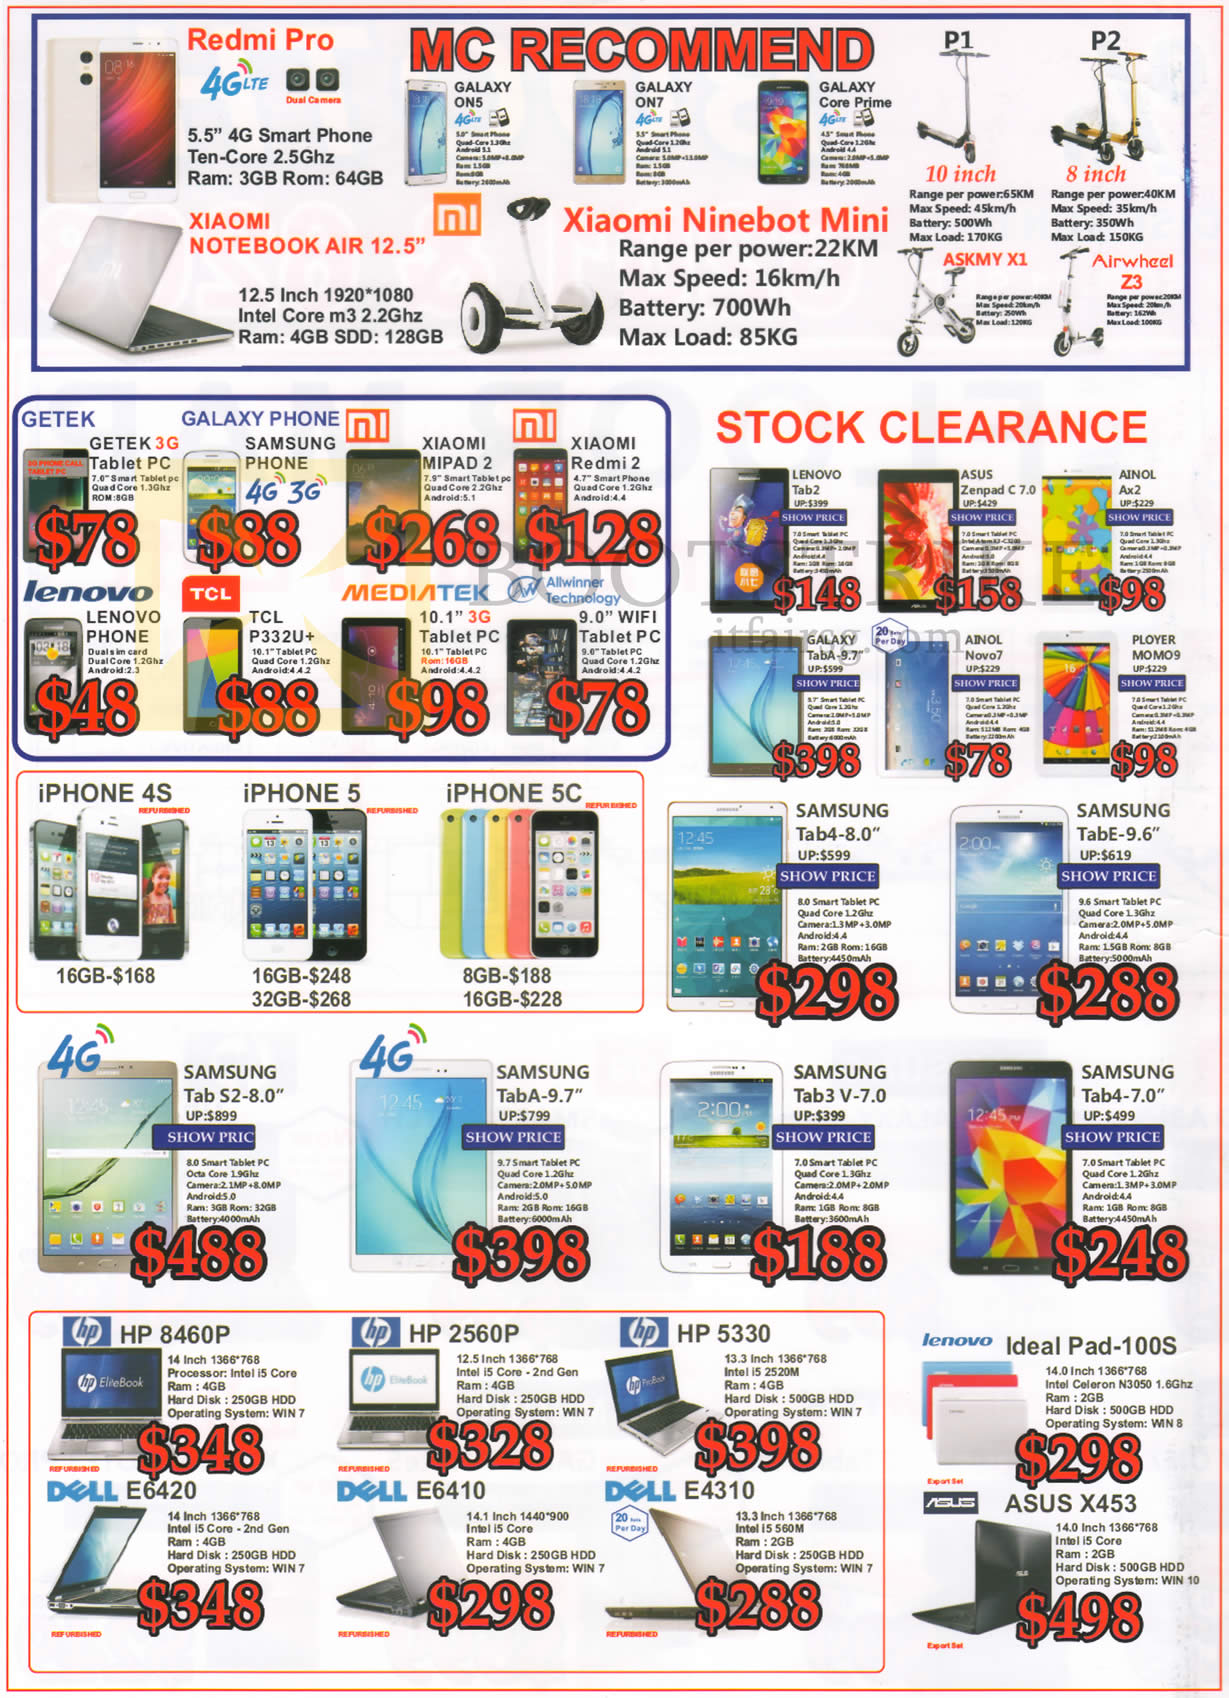 COMEX 2016 price list image brochure of J2 Mobile SmartPhones, Notebooks, Speakers, Bluetooth Headset, Scooters, Getek, Samsung, Xiaomi, Lenovo, Apple, Asus, HP, Dell